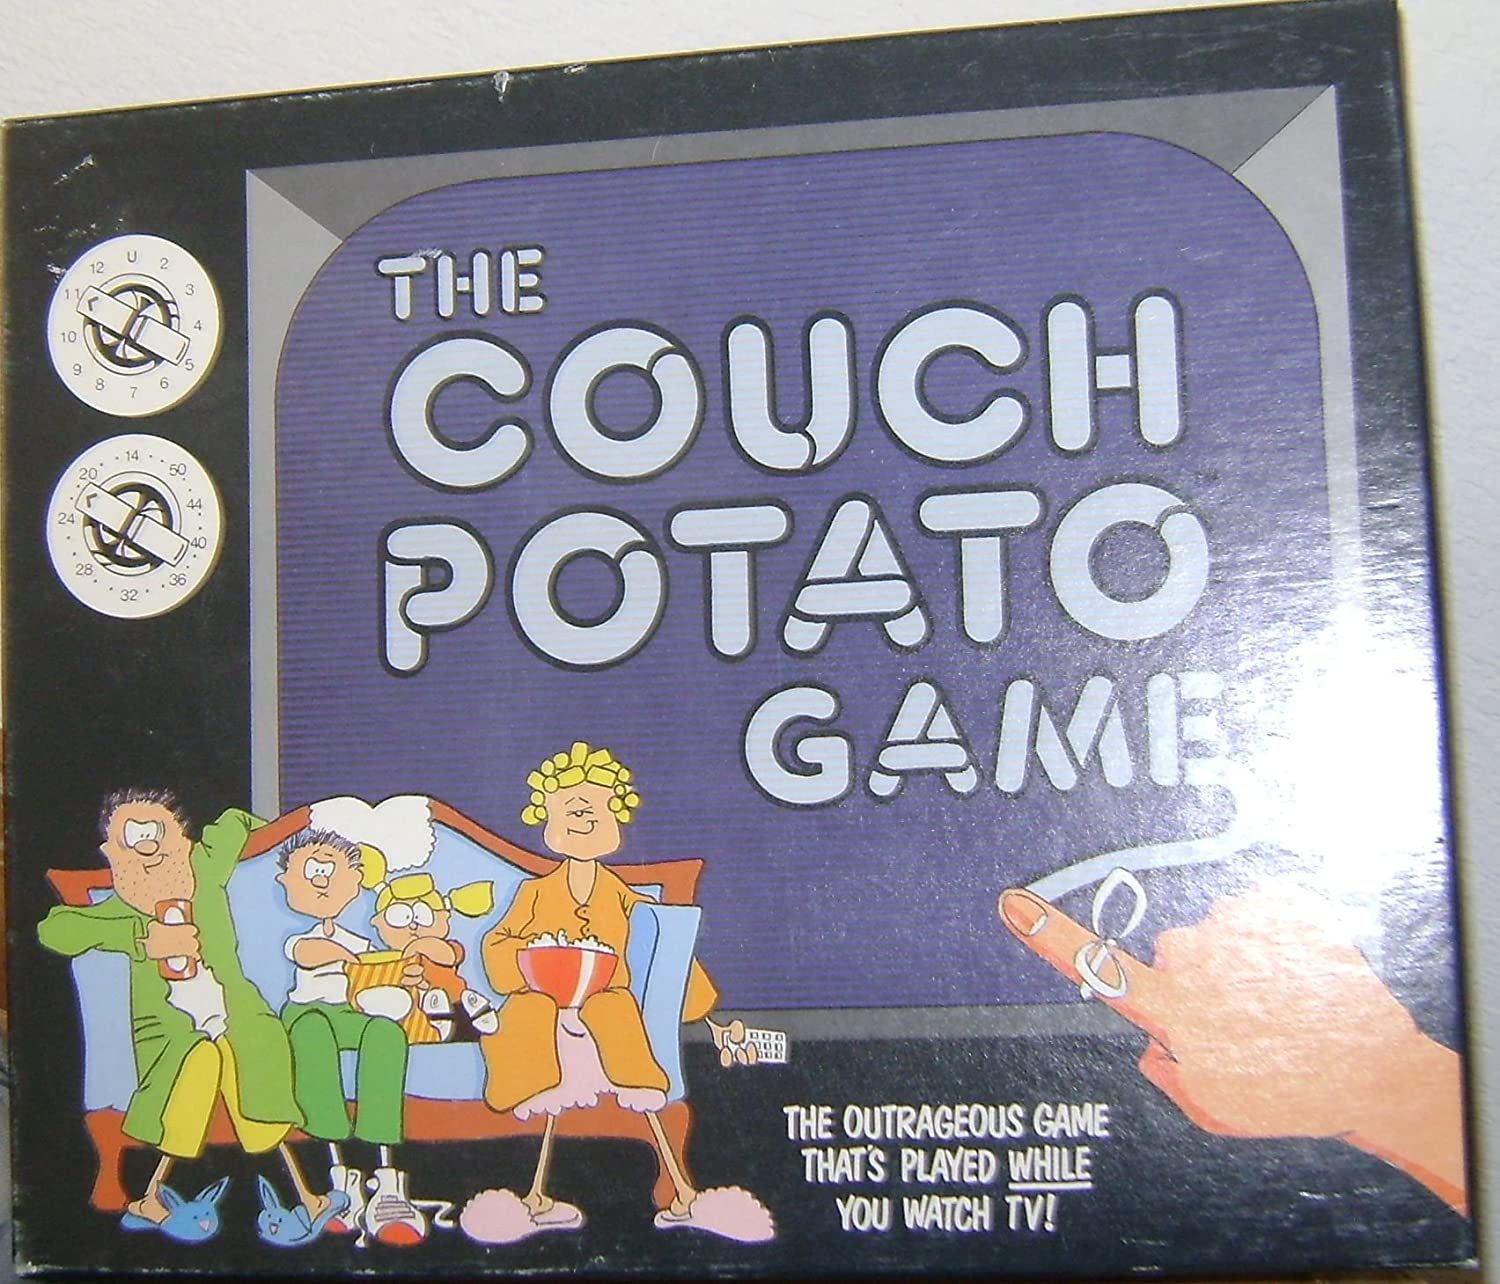 The Couch Potato Game